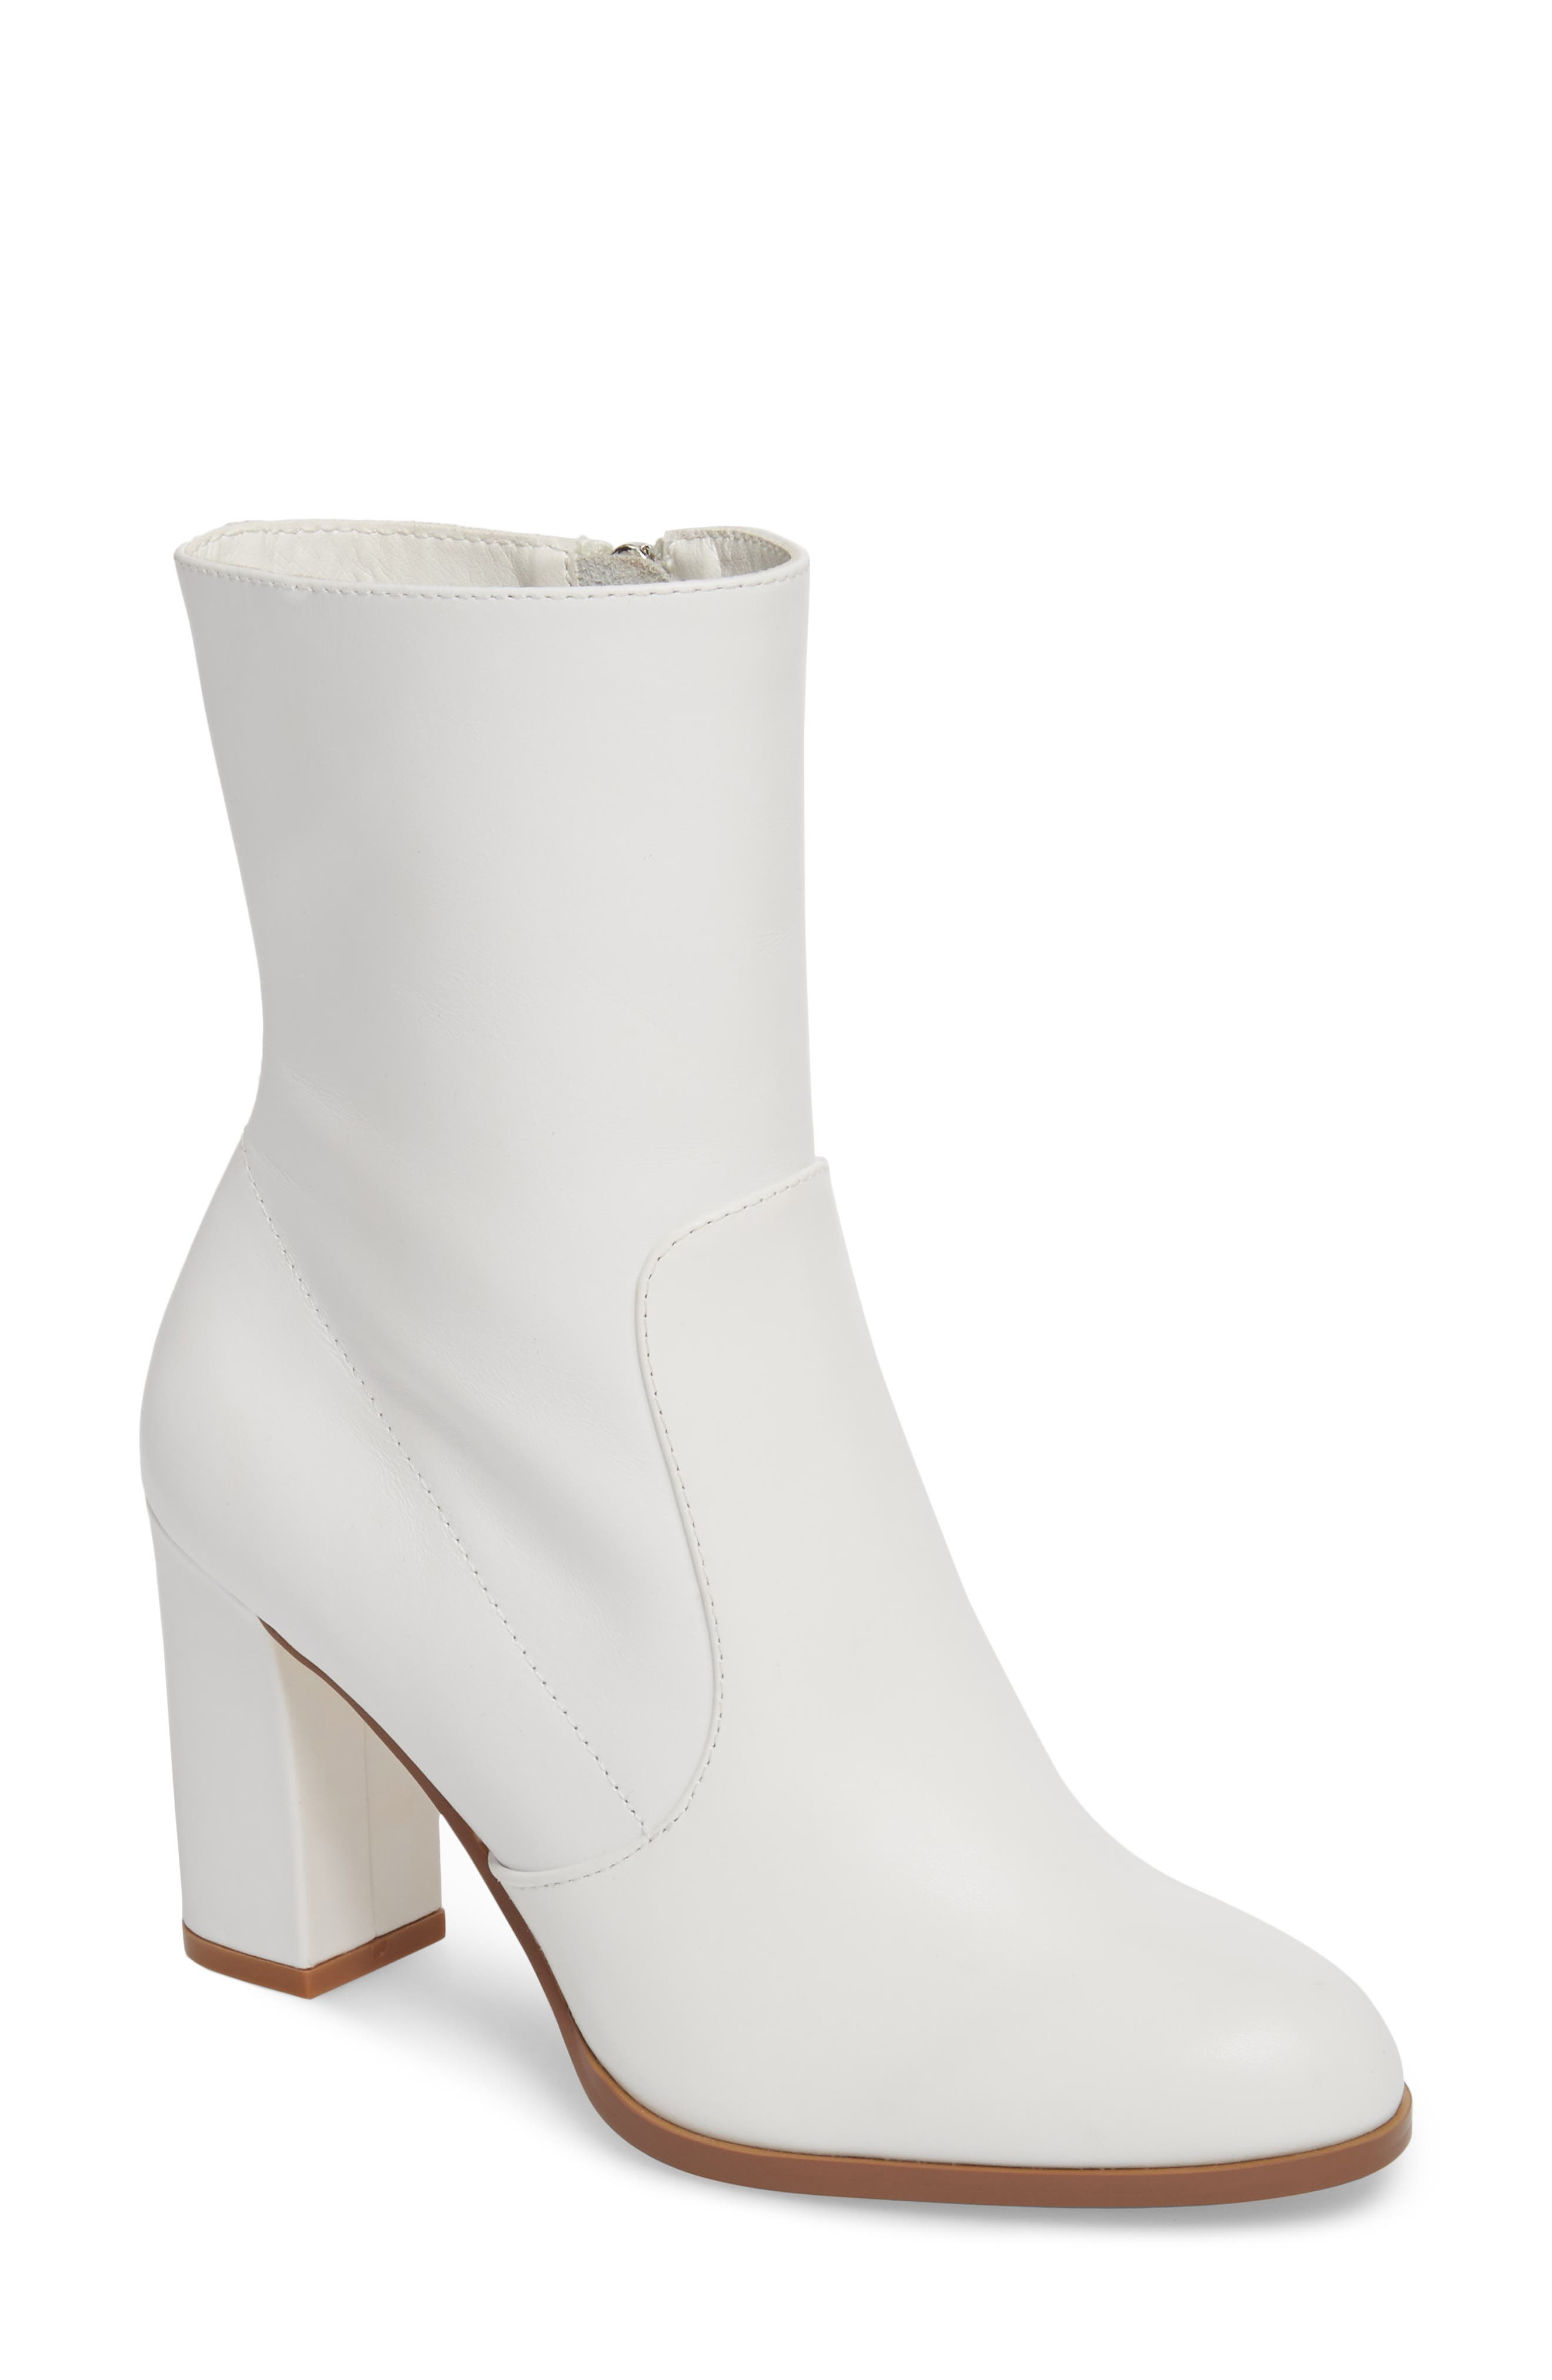 CHINESE LAUNDRY Craze Bootie, Main, color, CLOUD LEATHER